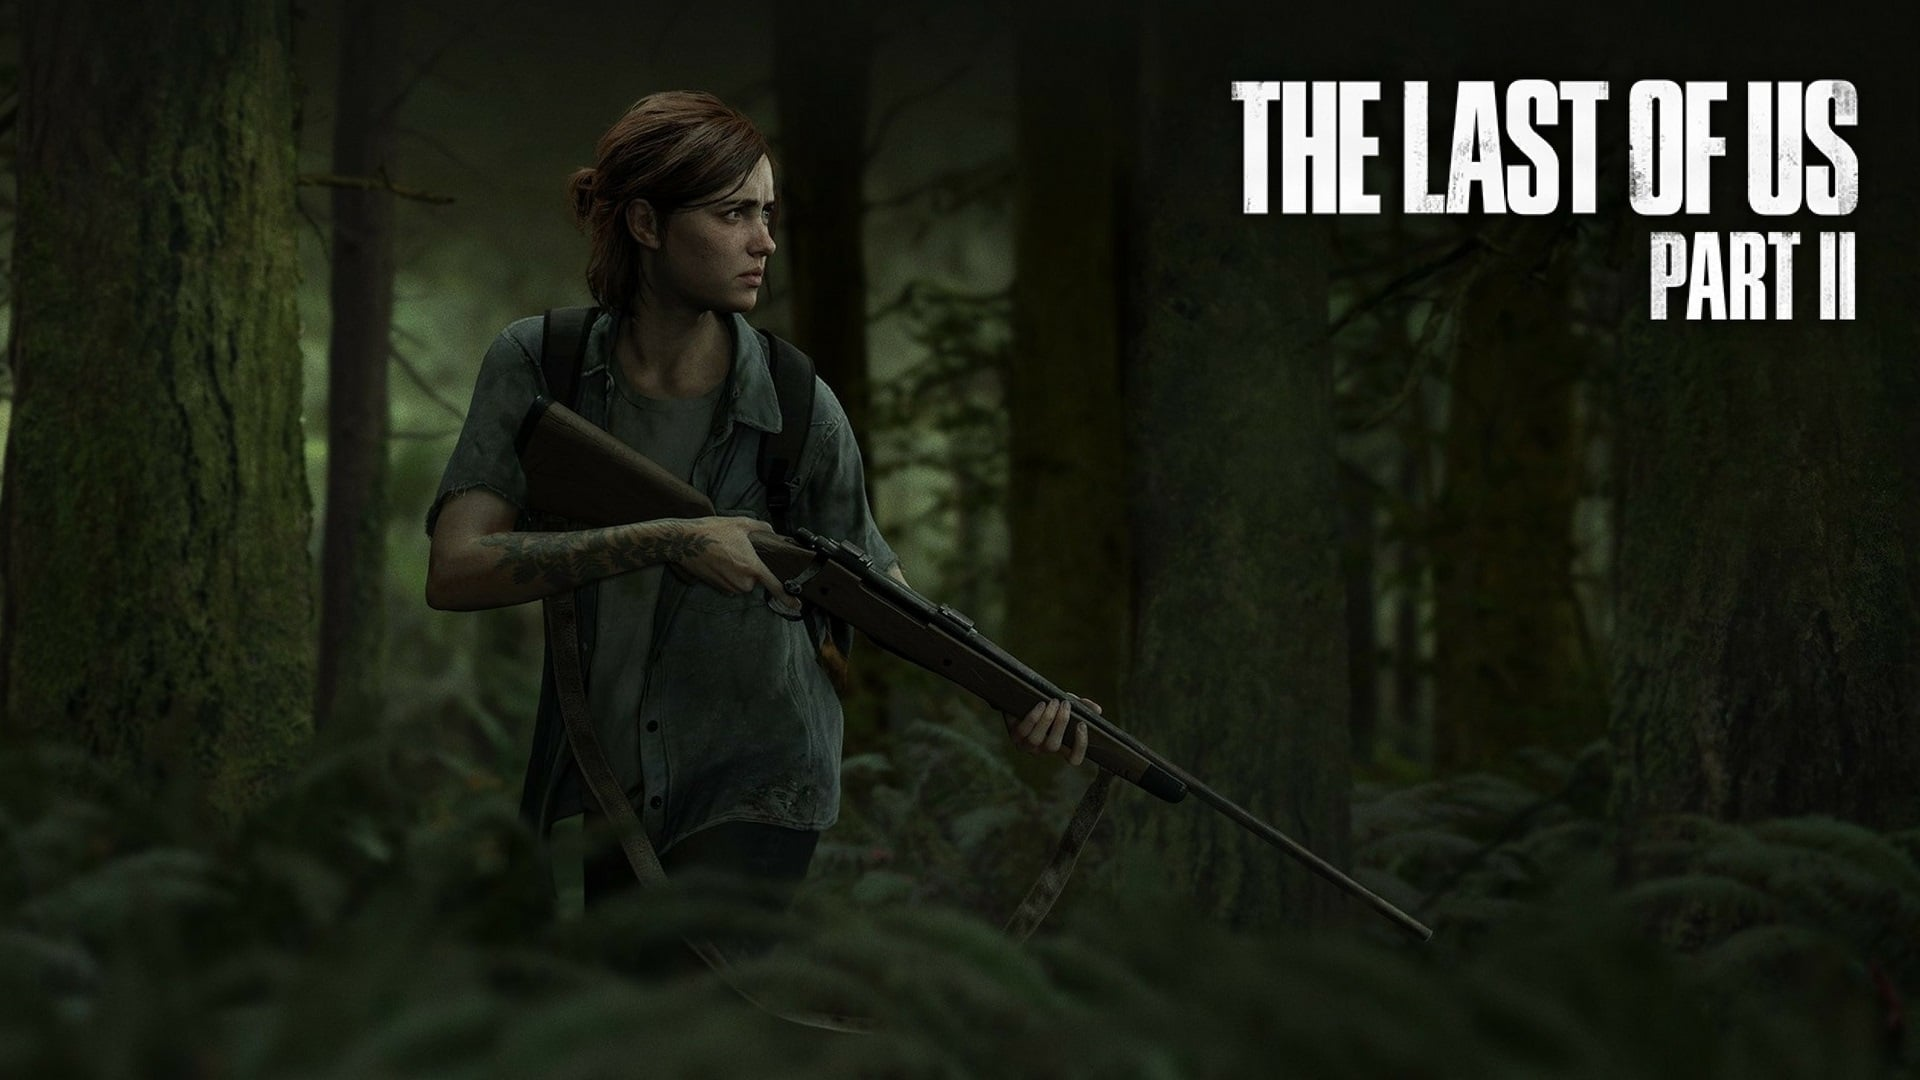 Last of Us Part II updates!